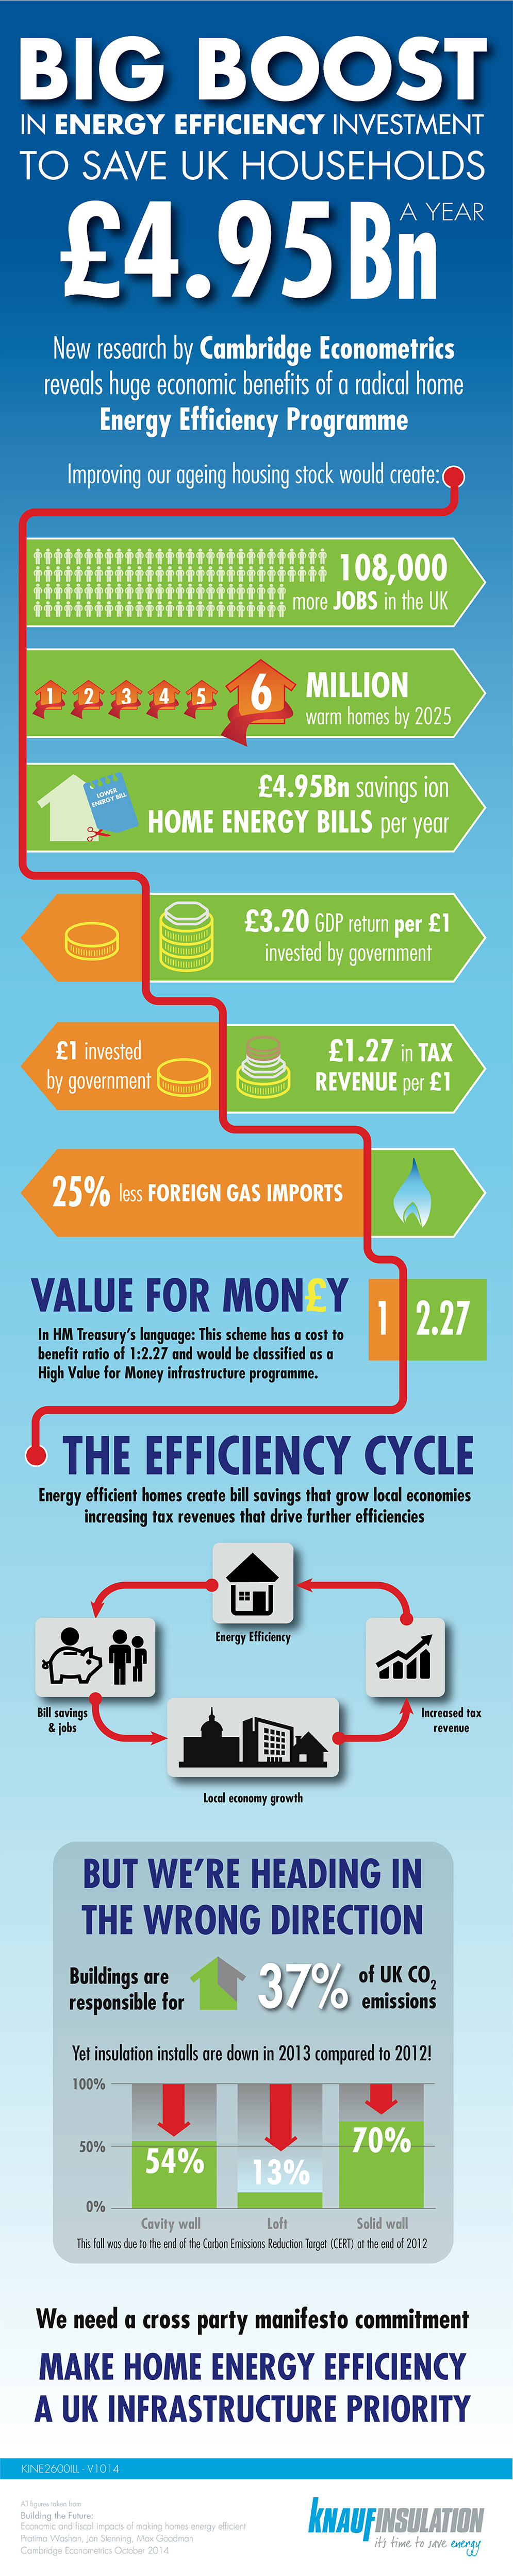 KNAUF INSULATION HIGHLIGHTS THE BENEFITS A POLITICAL AGREEMENT ON ENERGY EFFICIENCY COULD BRING TO THE UK